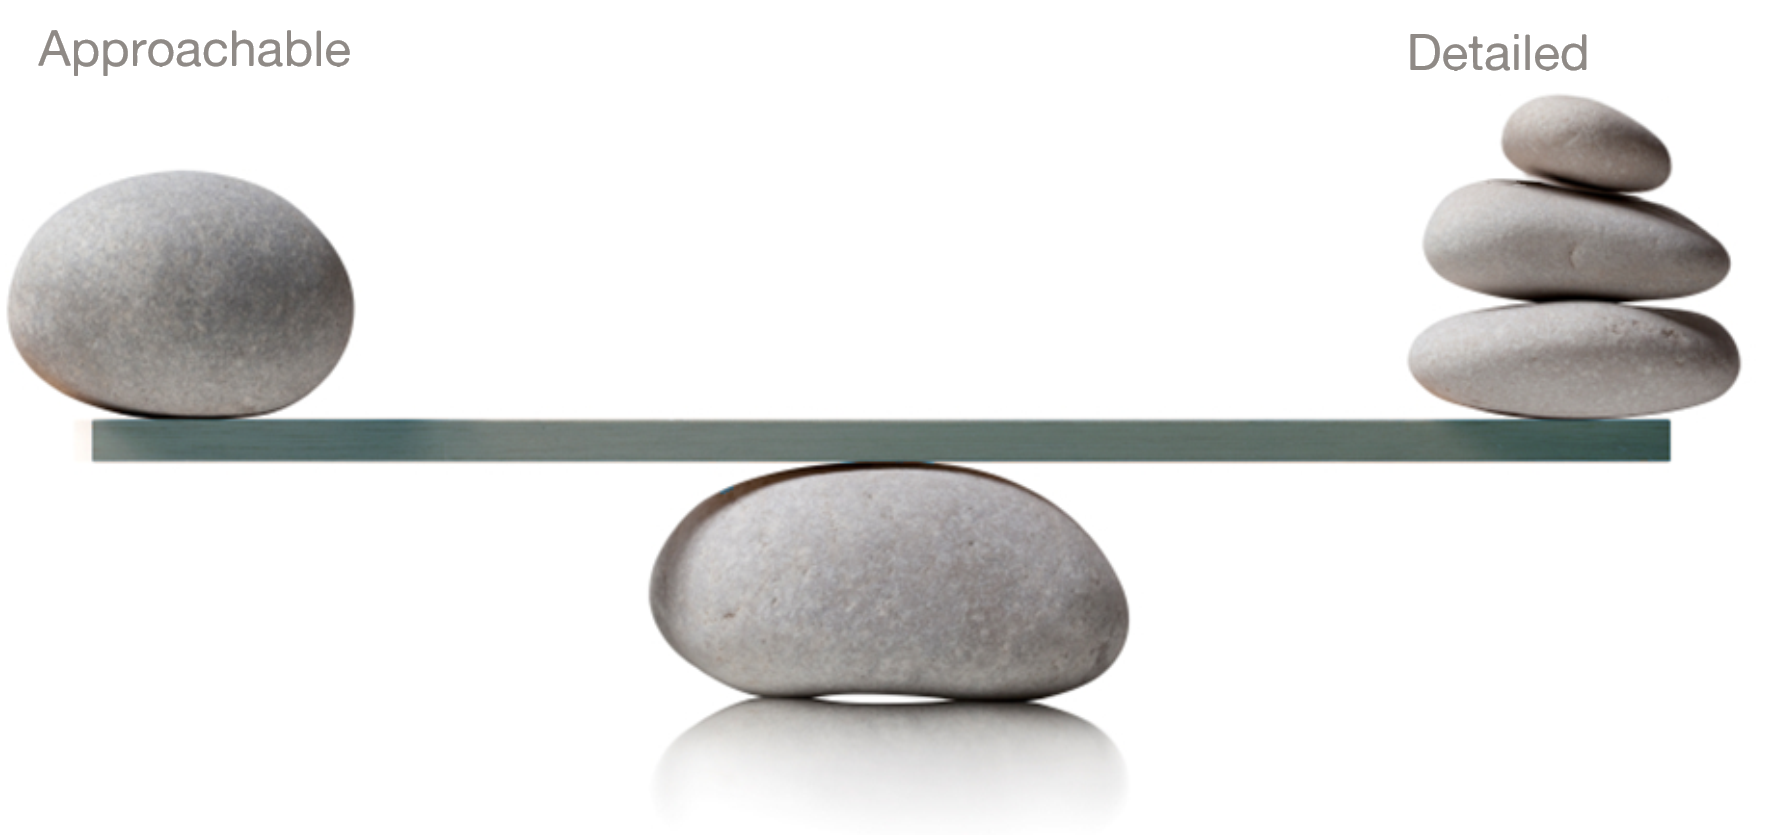 A see-saw with pebbles on each end balanced between approachable or detailed